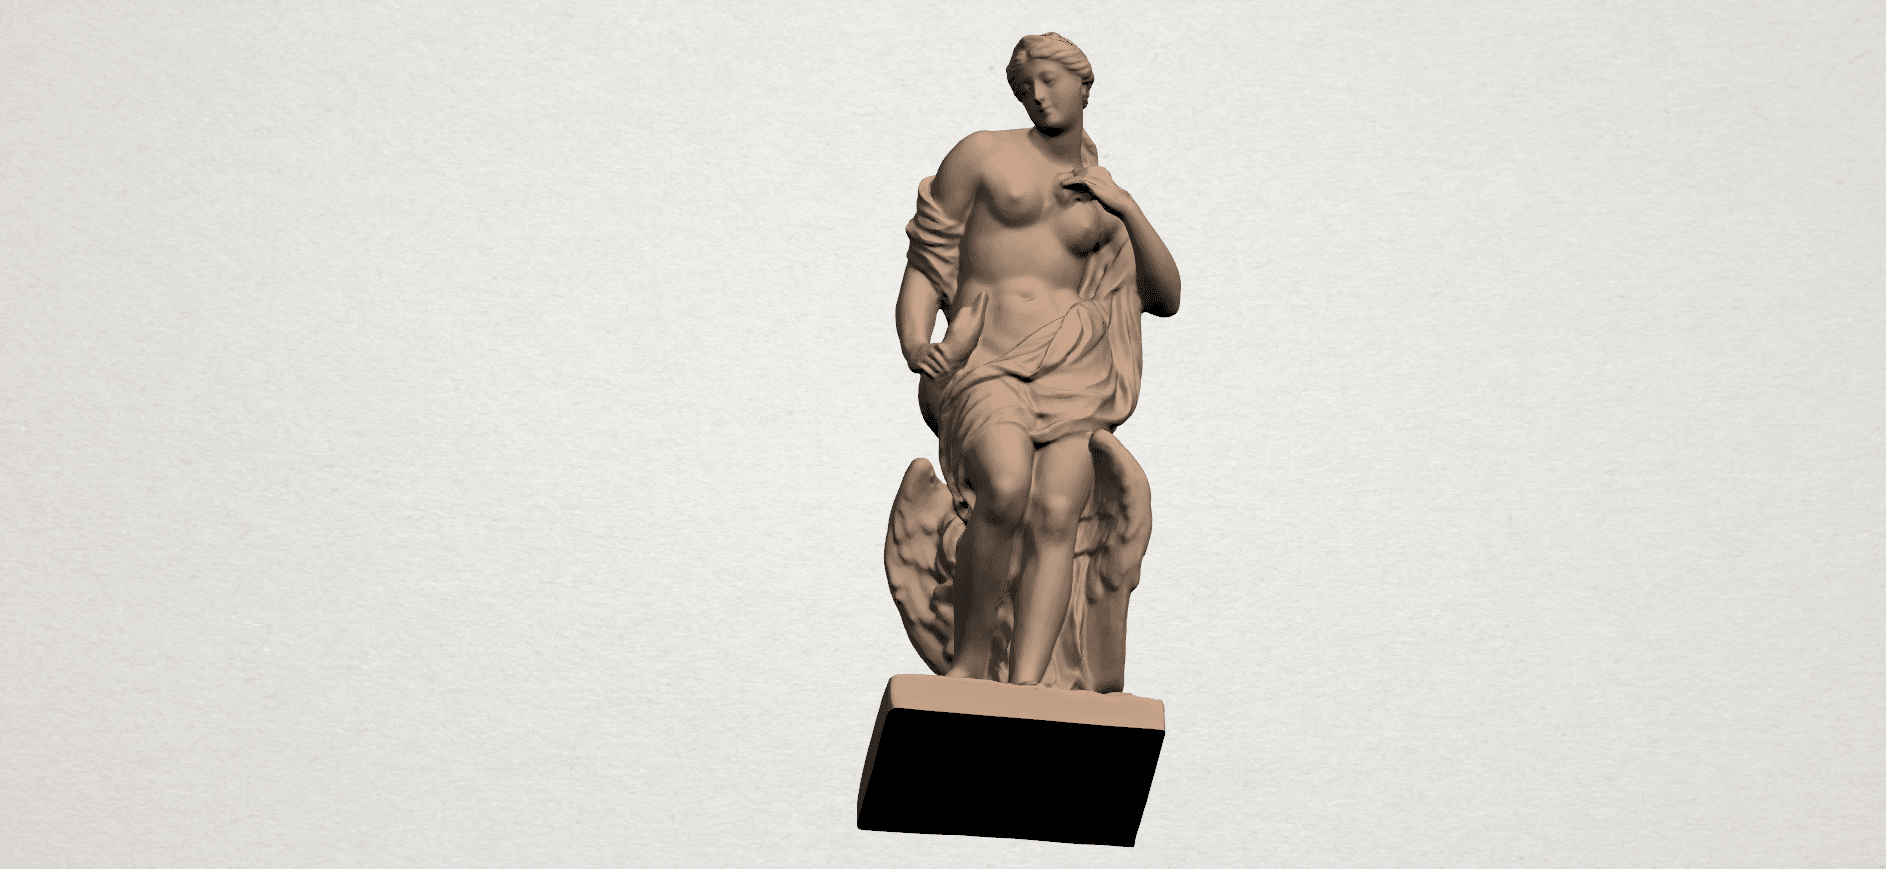 Naked Girl with Goose A07.png Download free STL file Naked Girl with Goose • 3D print template, GeorgesNikkei